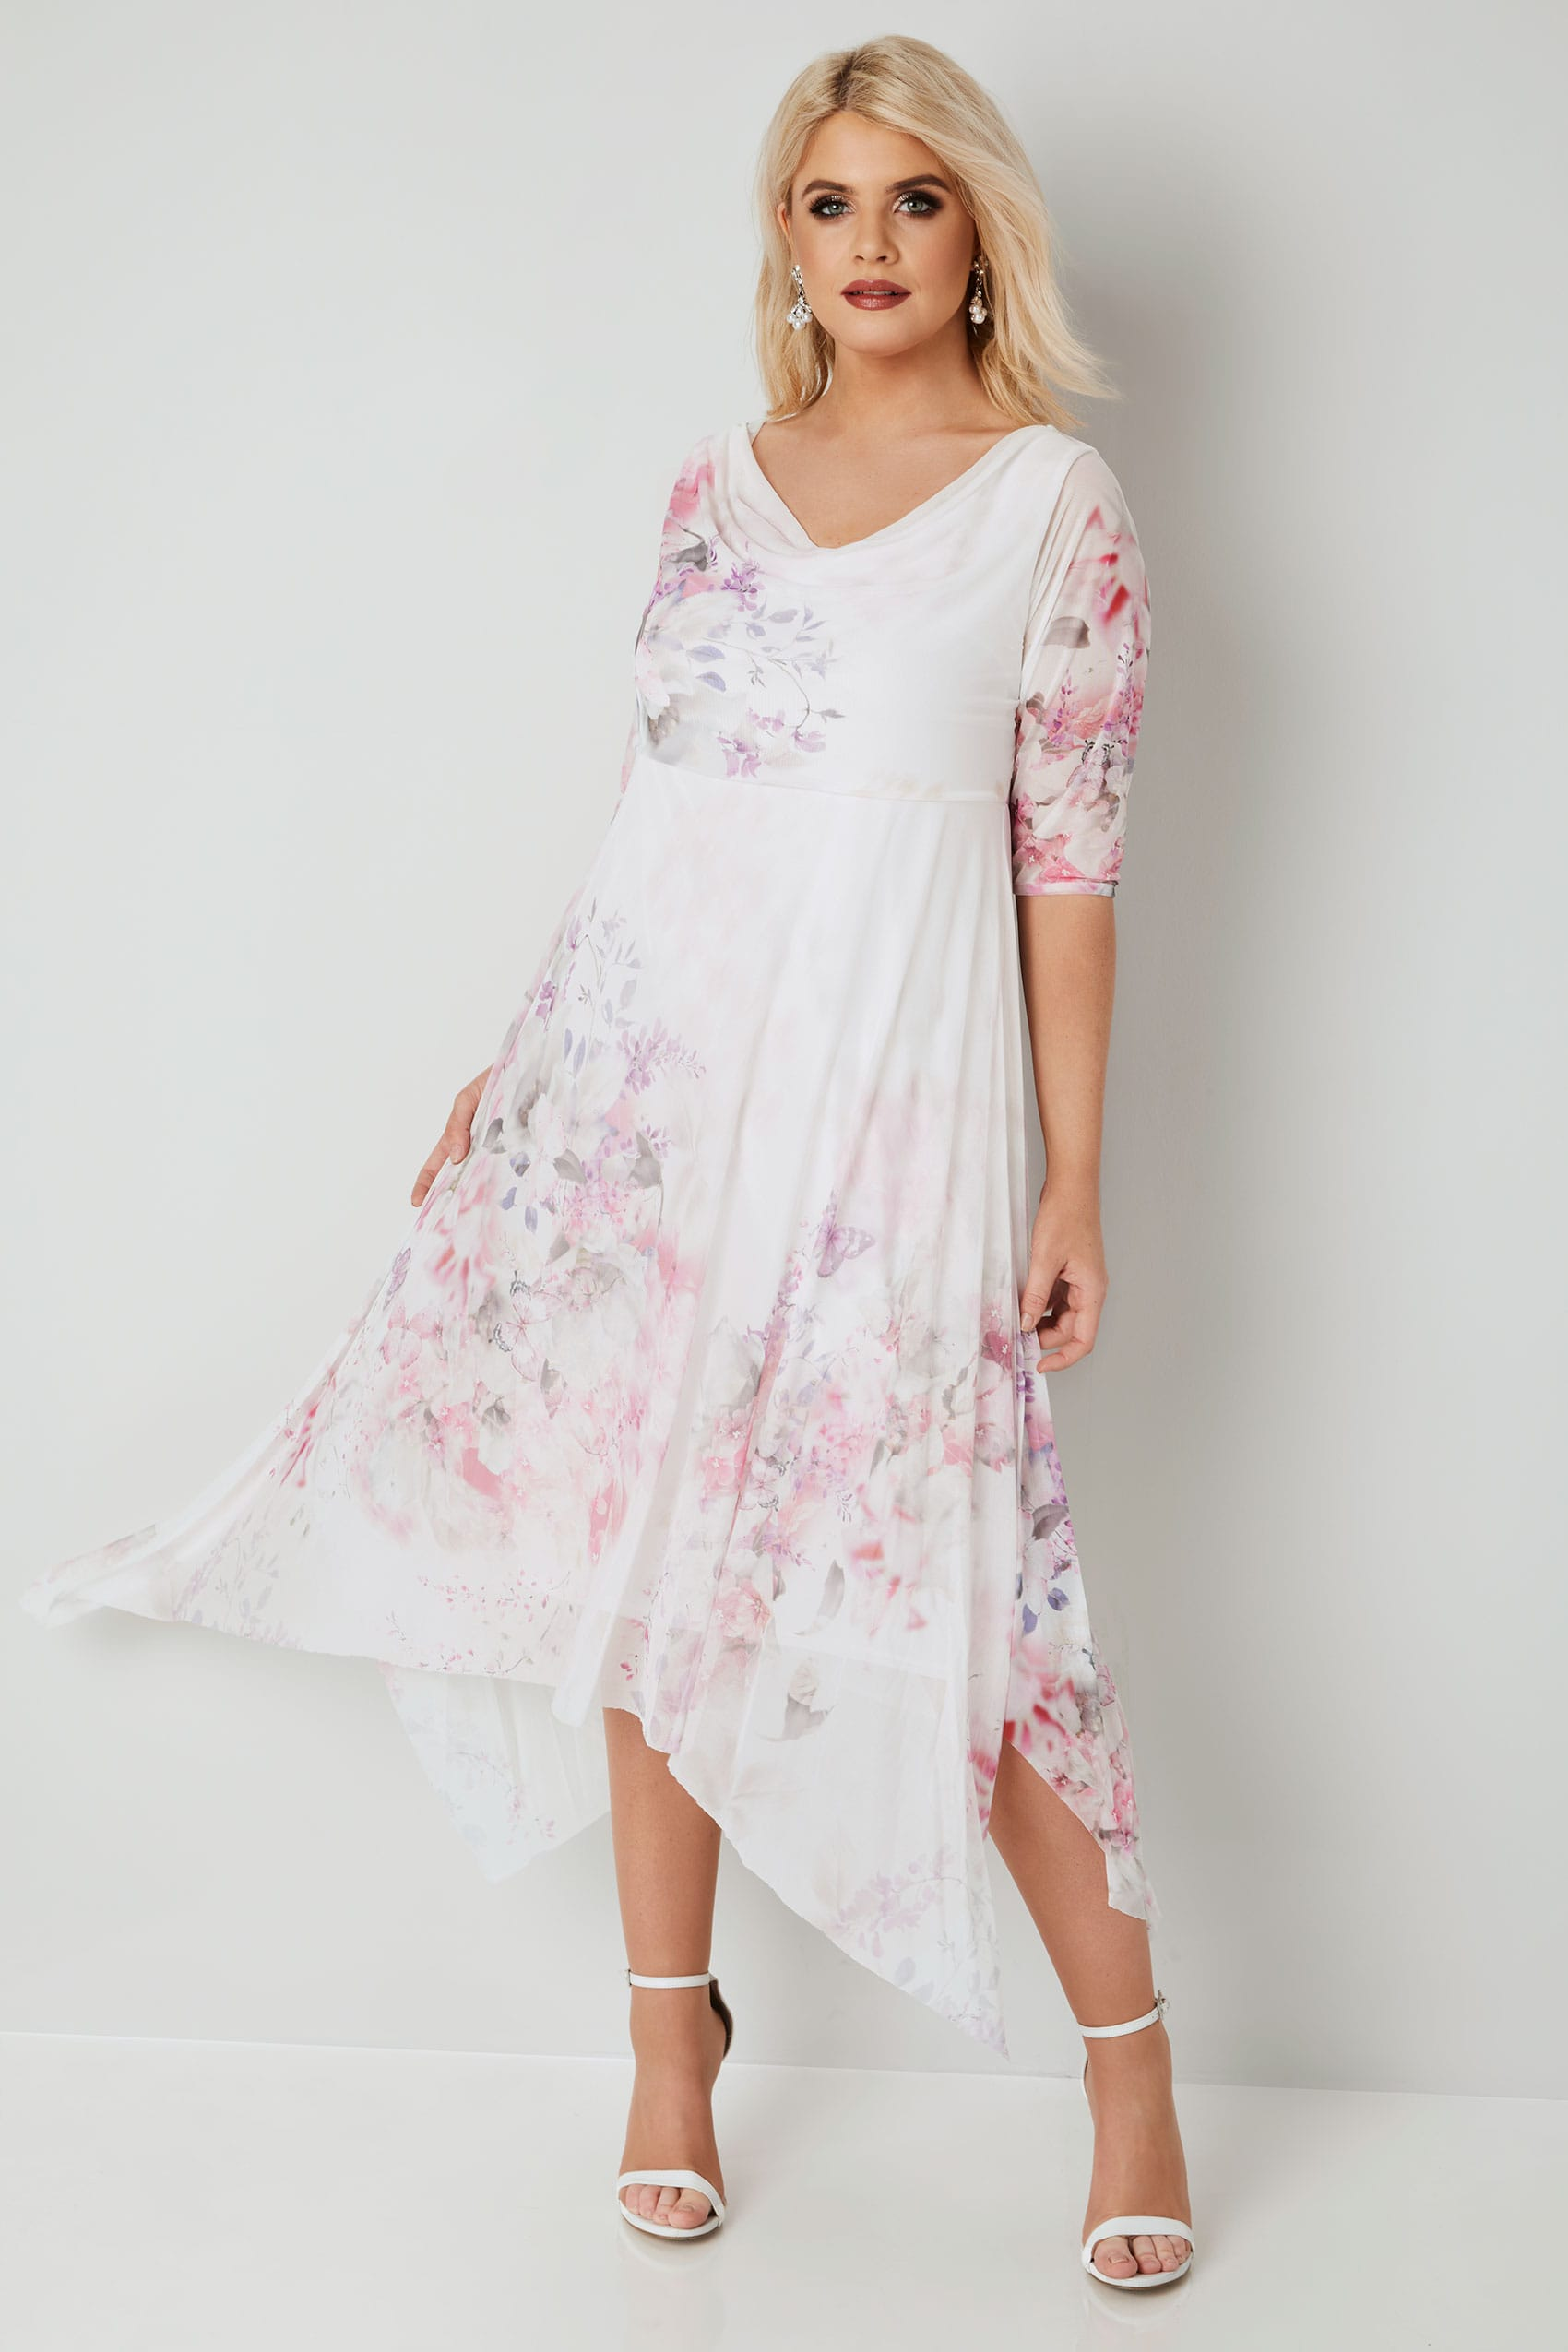 Yours London White Amp Pink Floral Mesh Hanky Hem Dress